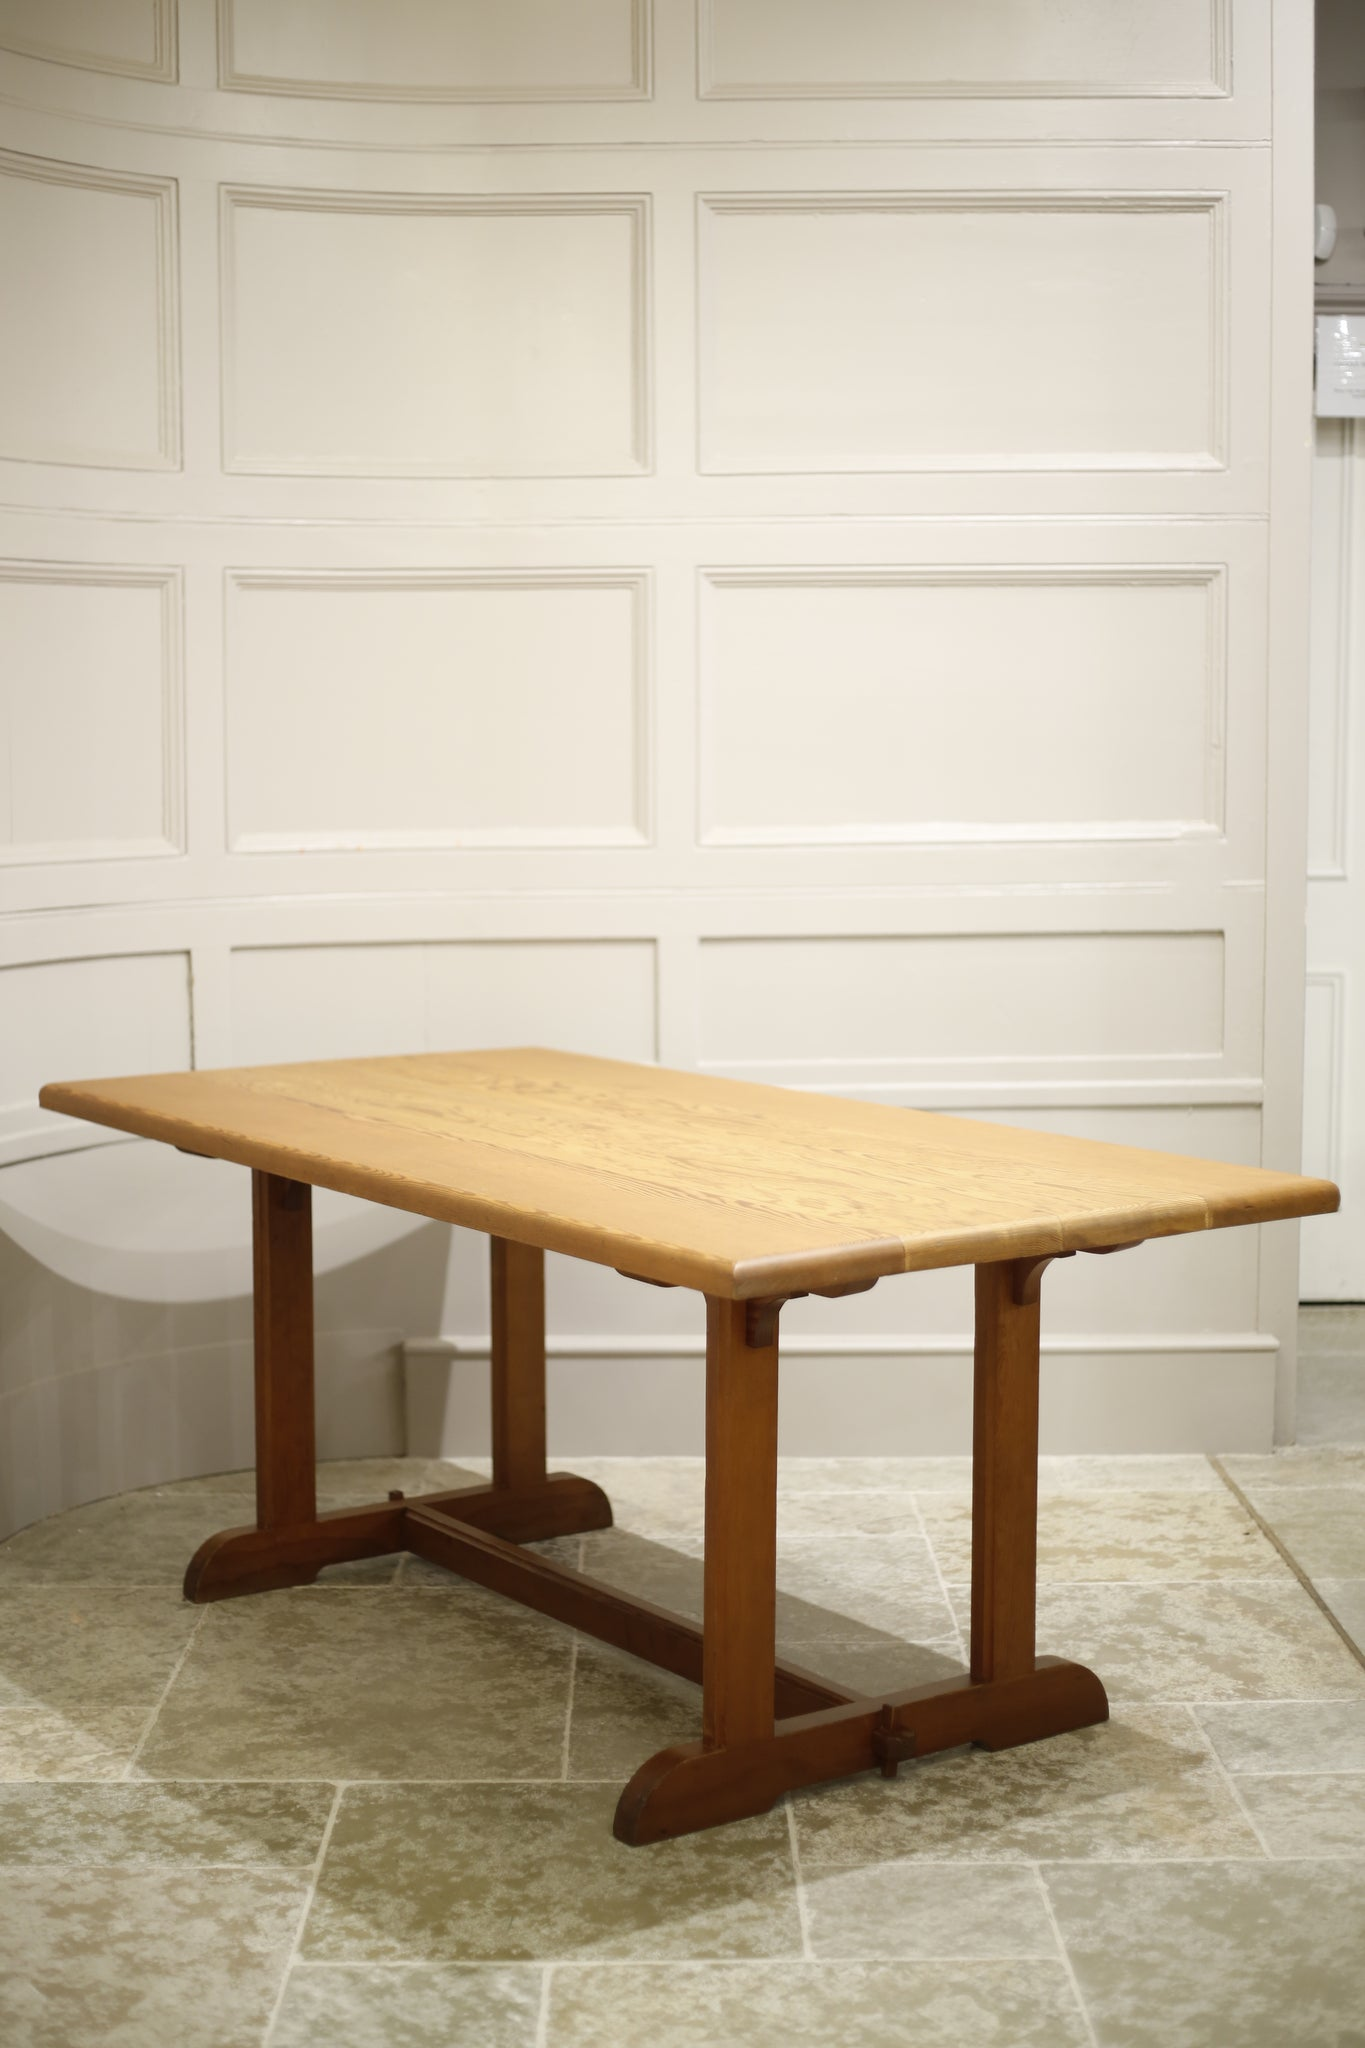 Pine Arts and crafts type dining table - TallBoy Interiors